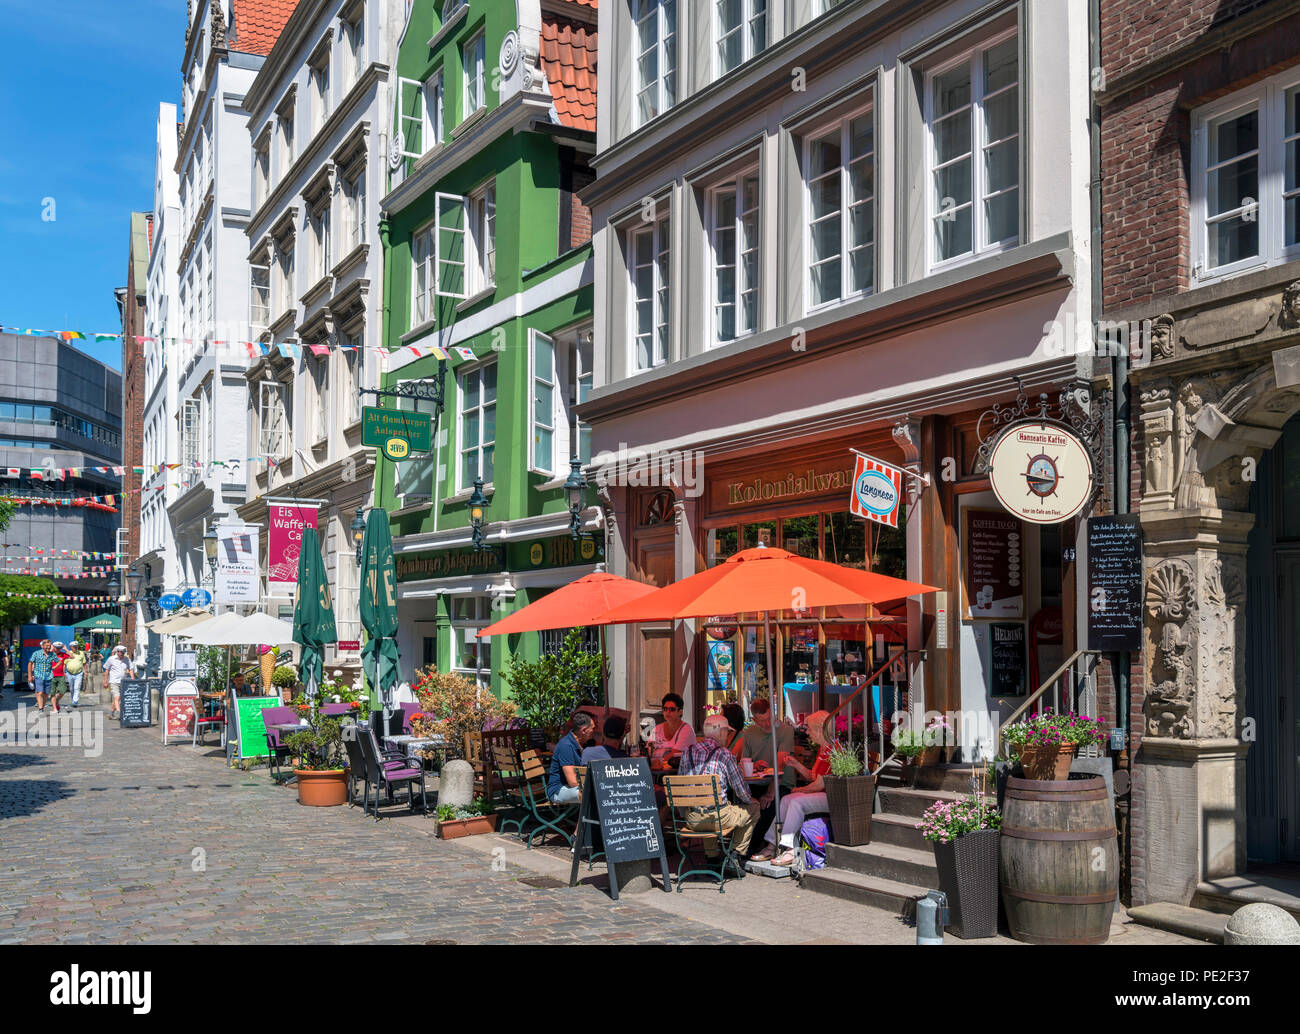 Cafes and bars on historic Deichstrasse (Deichstraße) in the Altstadt (Old Town), Hamburg, Germany - Stock Image